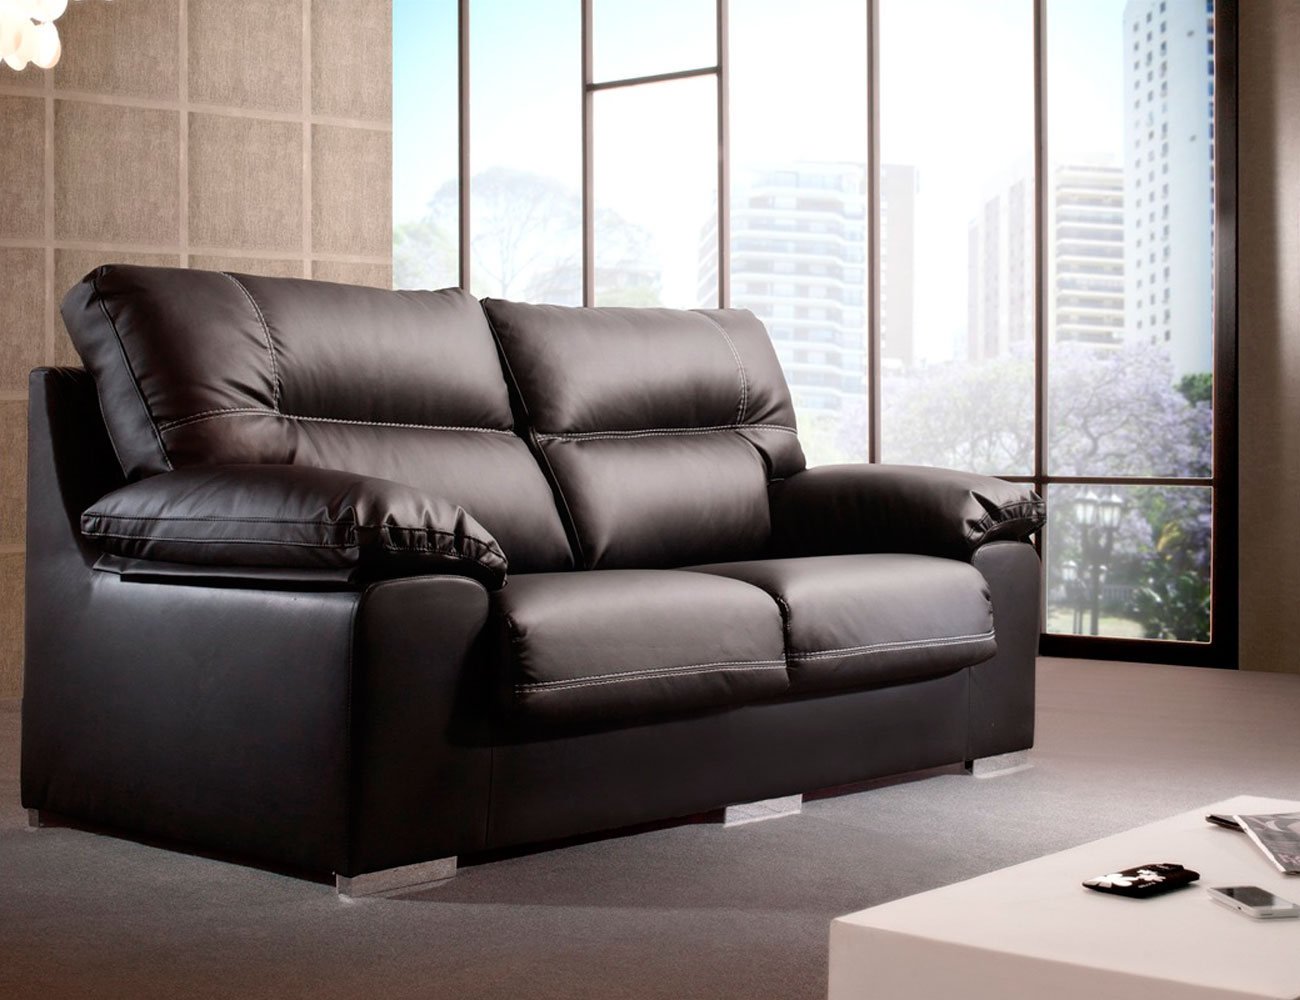 Sofa 3 plazas polipiel negro19